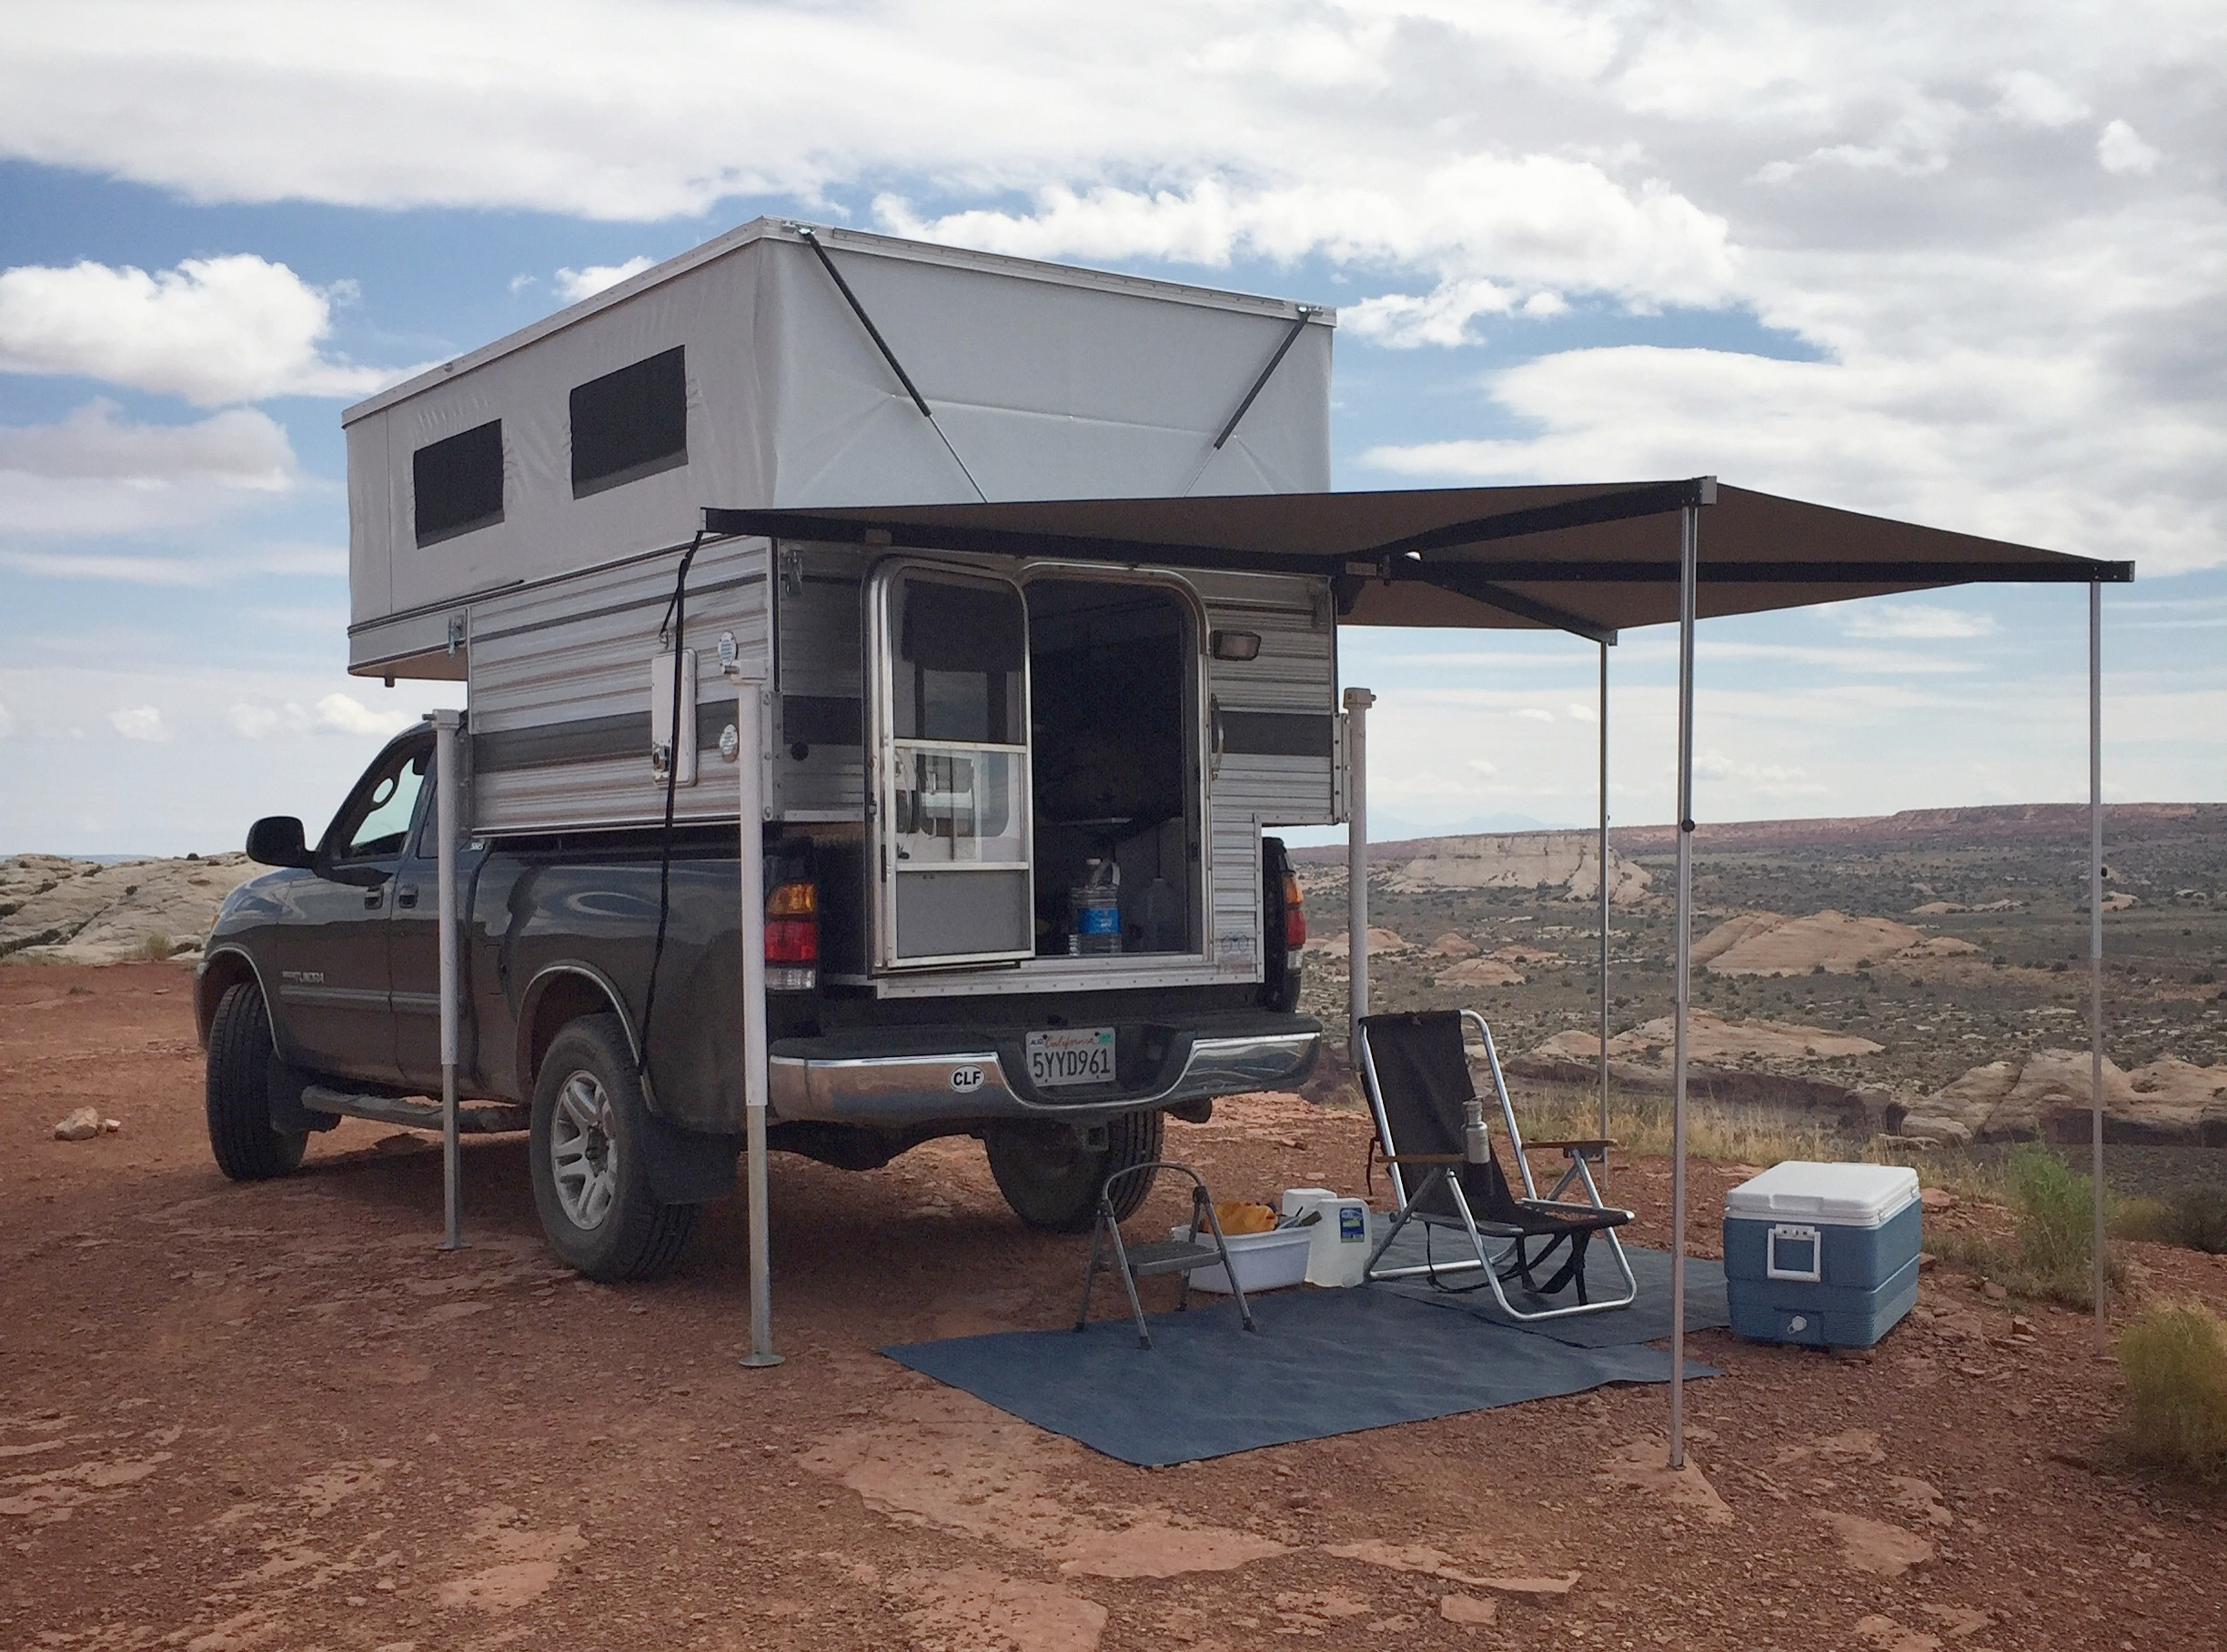 After a lot of research I settled on this setup for my mobile studio. A pop-up camper is dry, secure, heated, powered, very comfortable and puts no limits on where a pick-up truck can go.